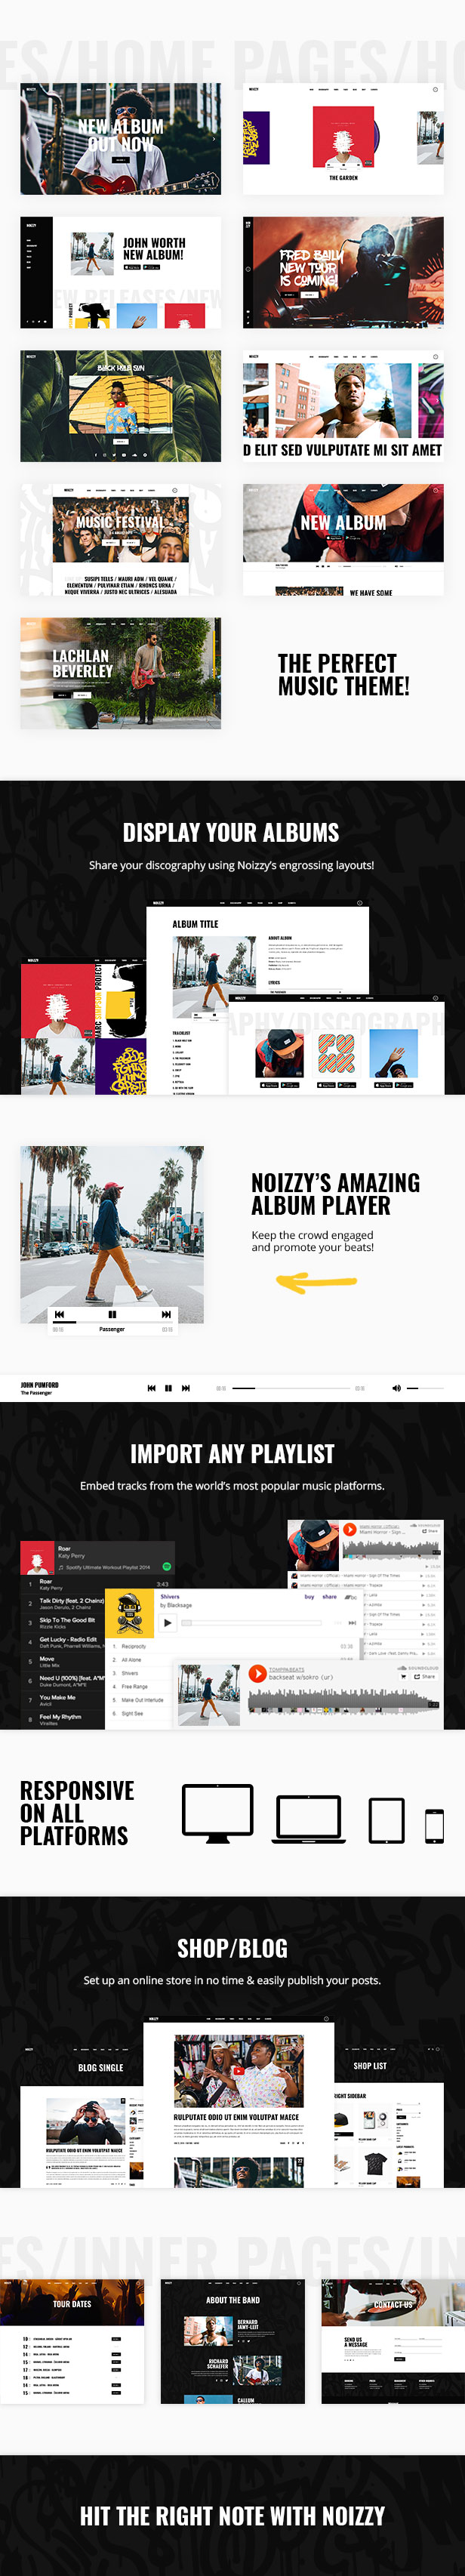 Noizzy - Music Band Theme - 1